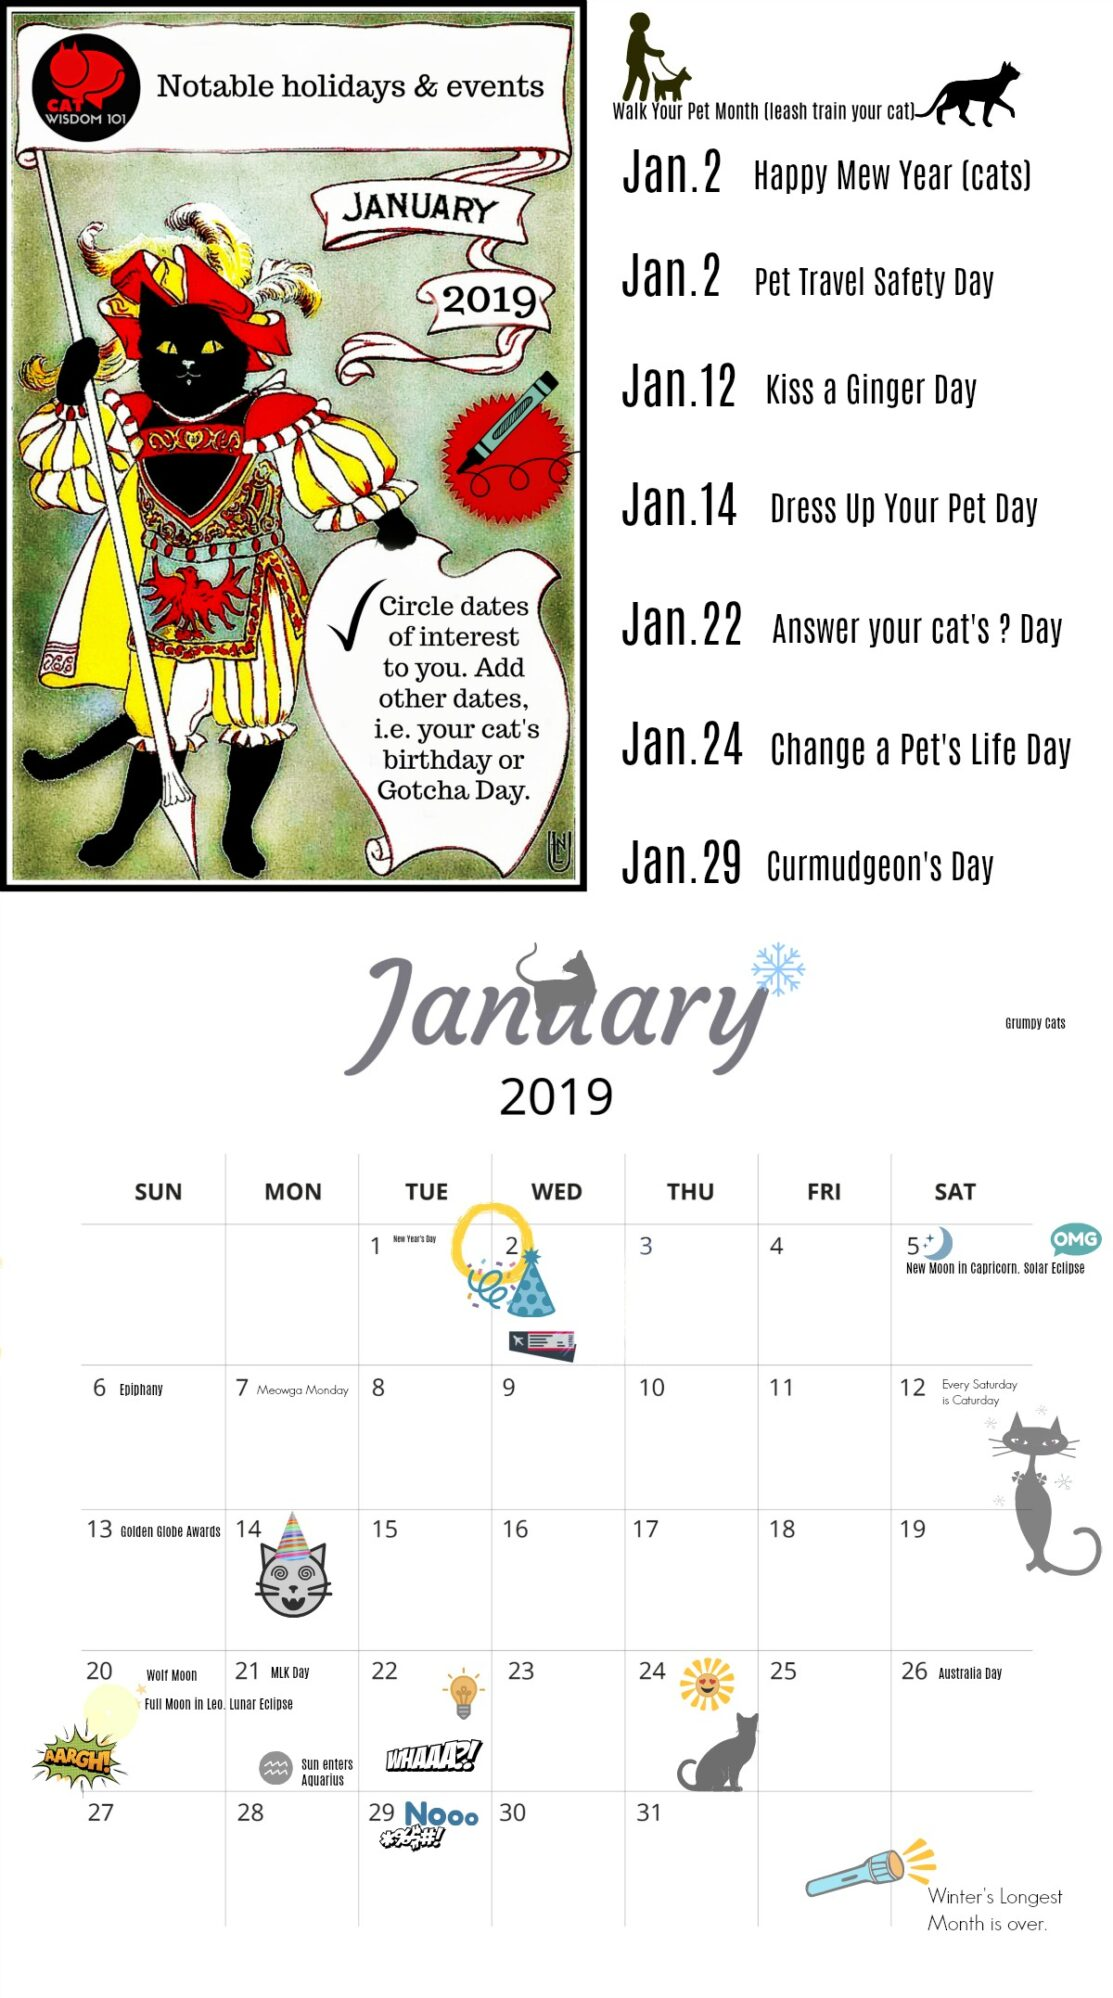 cat_pet_holiday_calendar_catwisdom101_january_2019